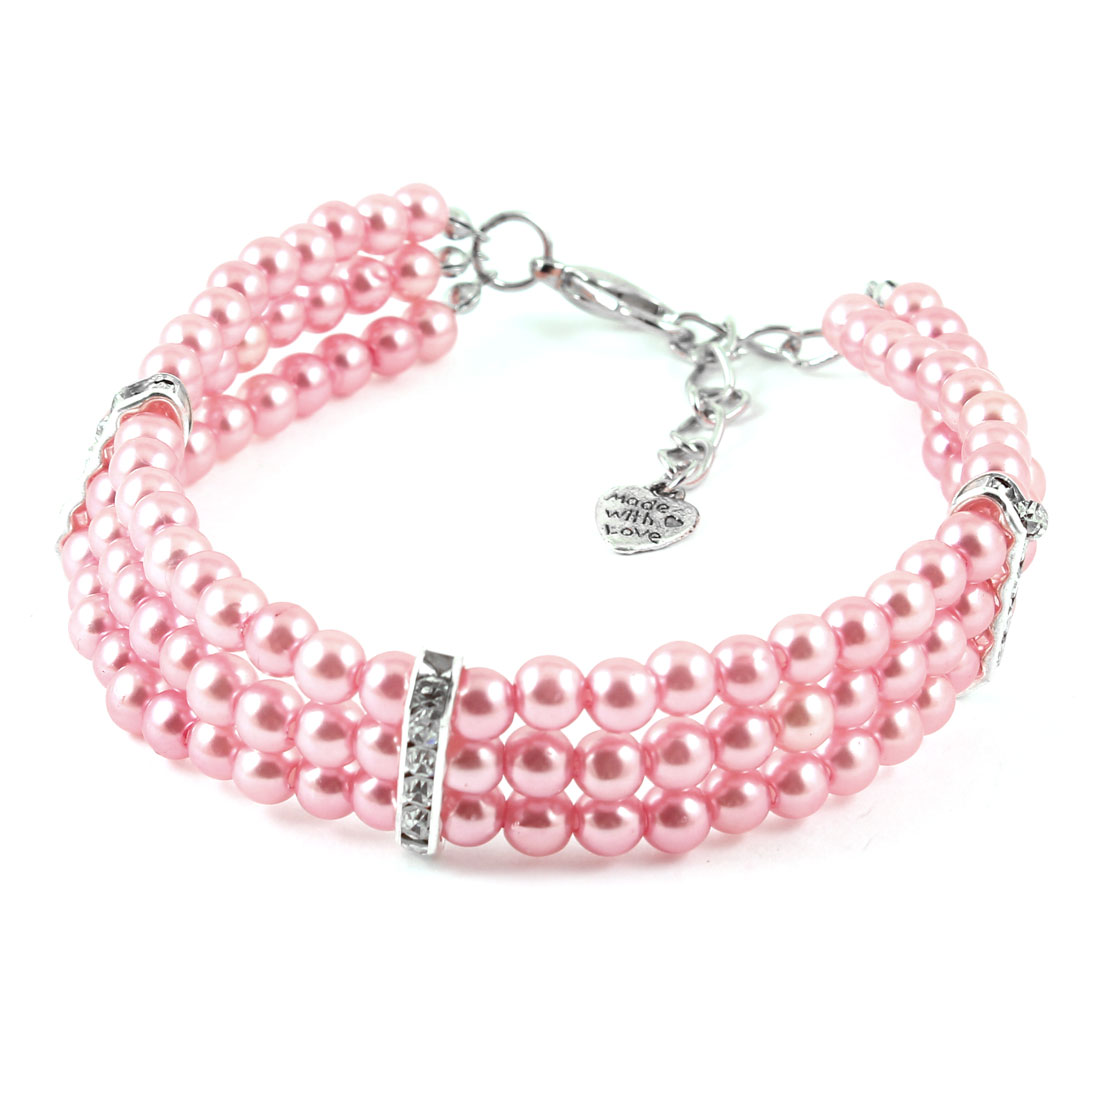 Pink Beads Ornament Lobster Clasp Pet Dog Yorkie Collar Necklace M